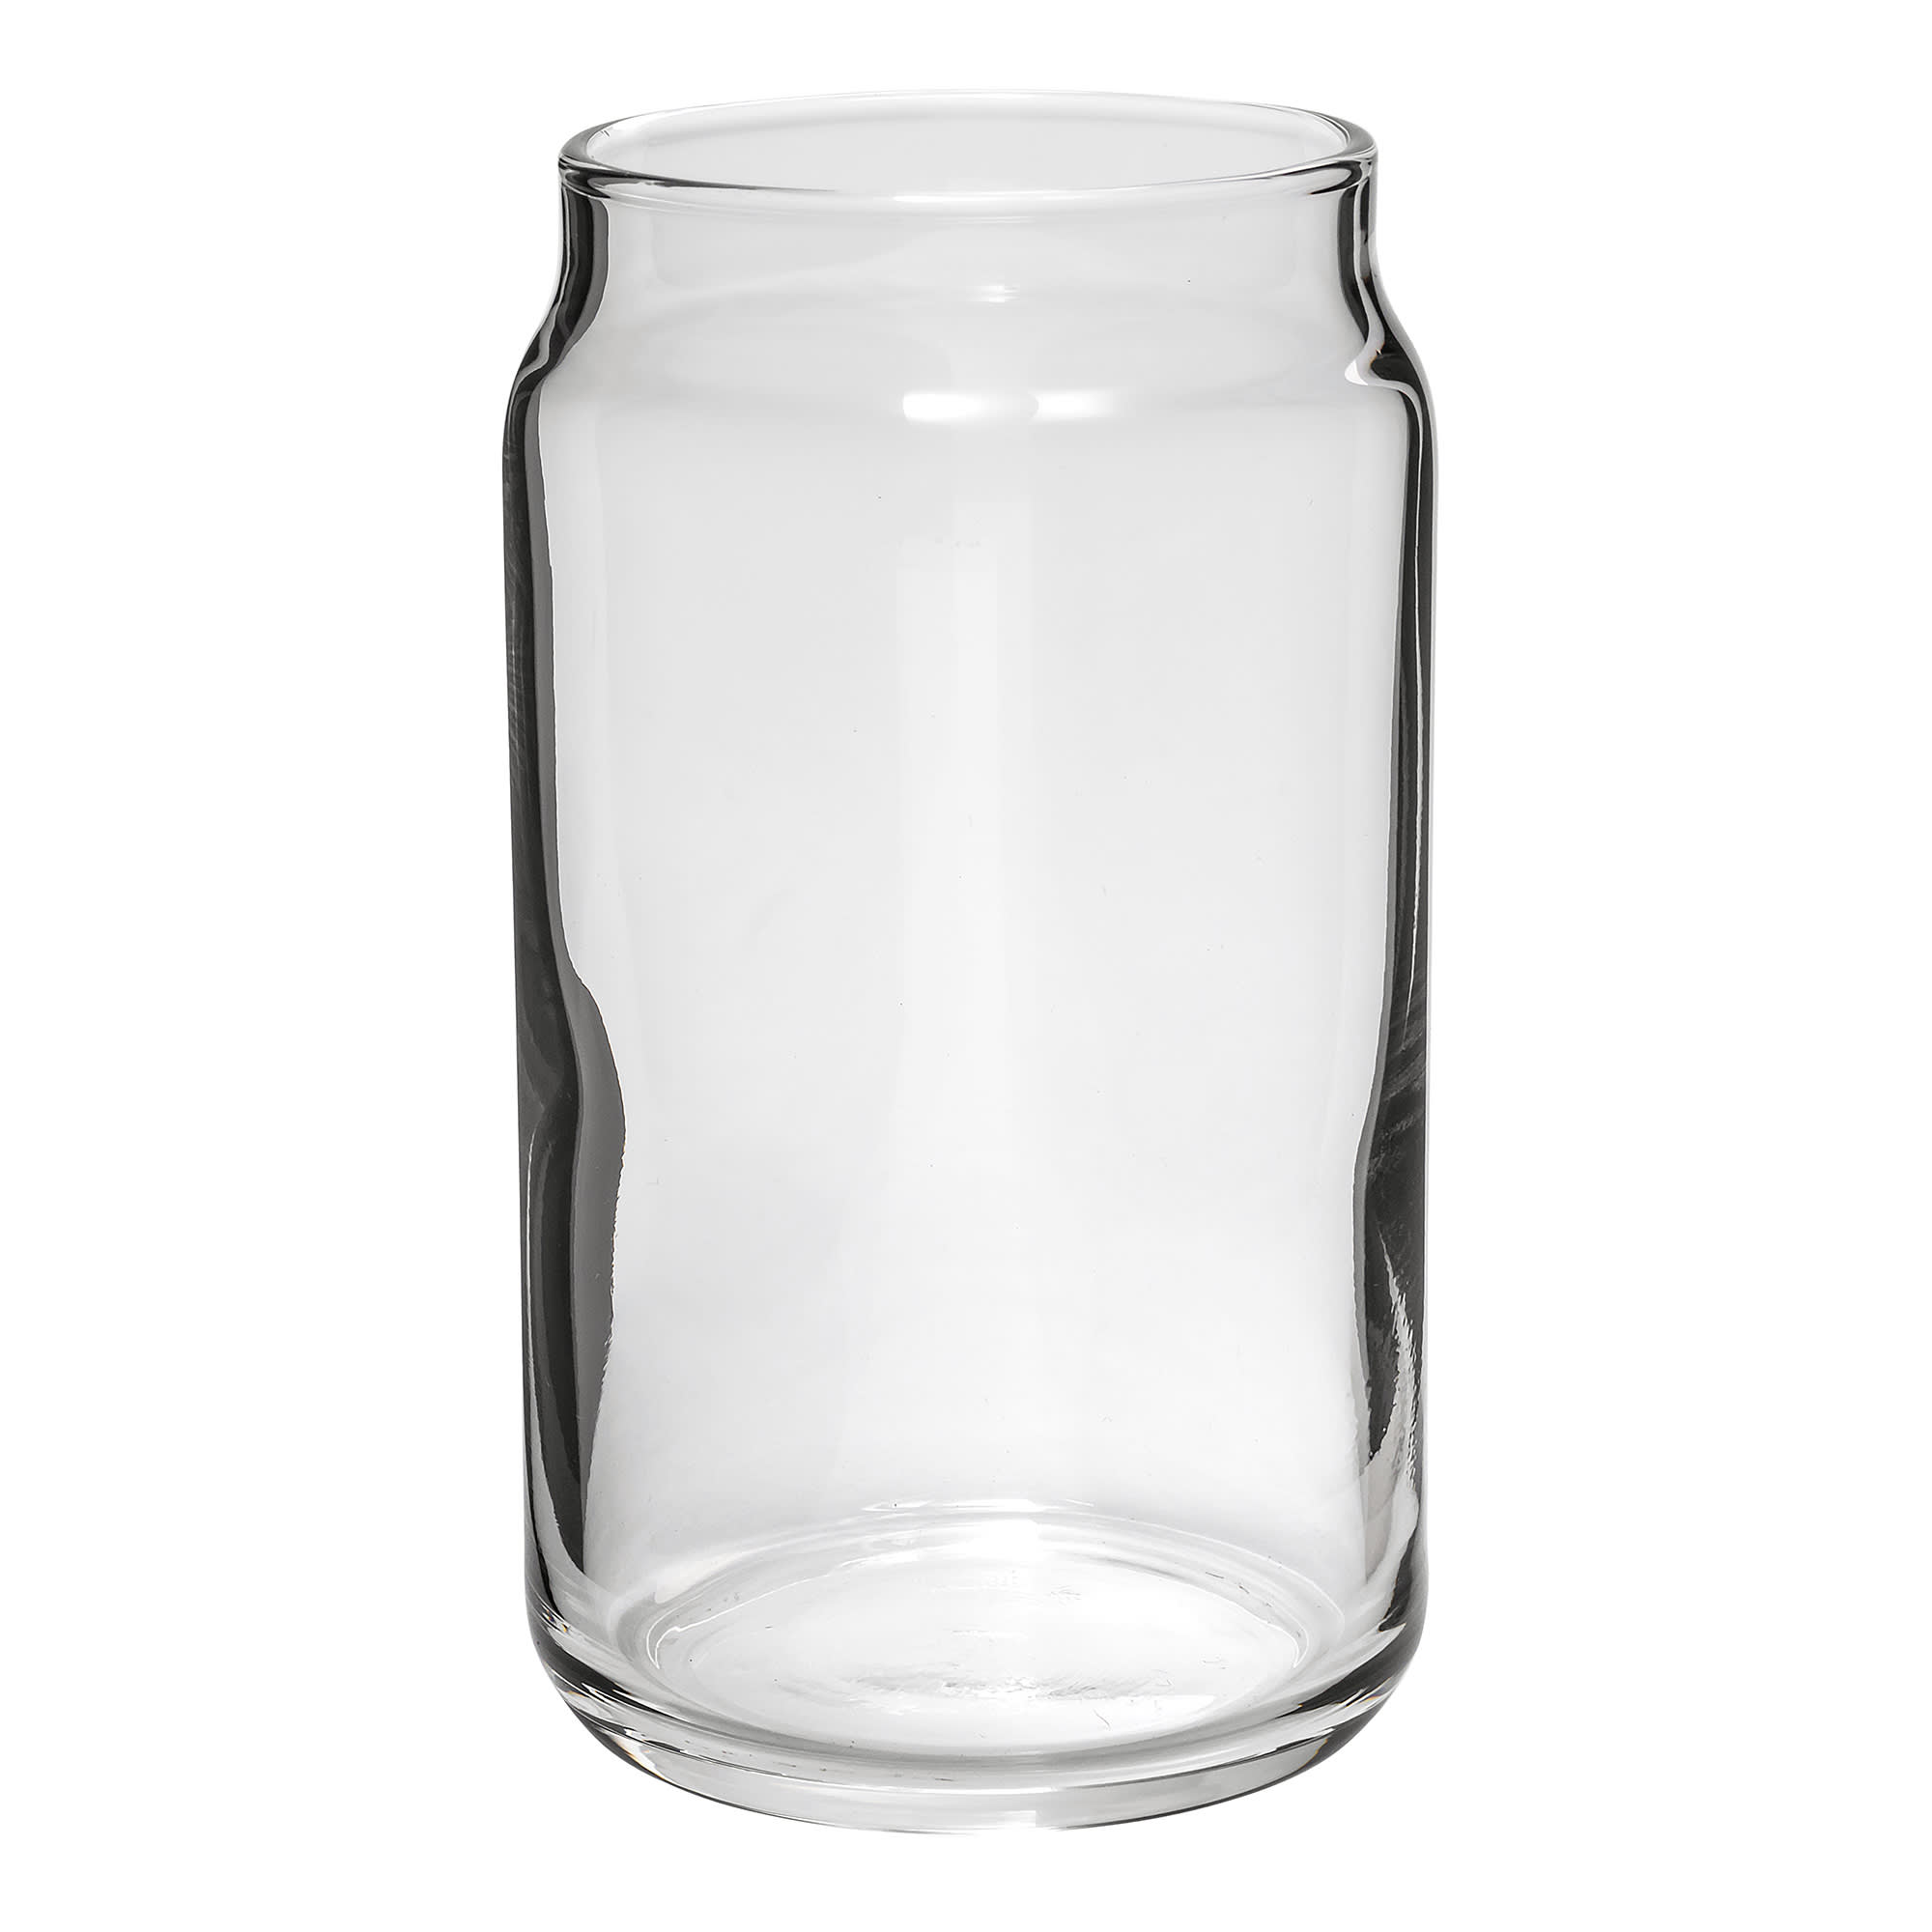 Libbey 265 5 oz Beer Can Taster, Clear